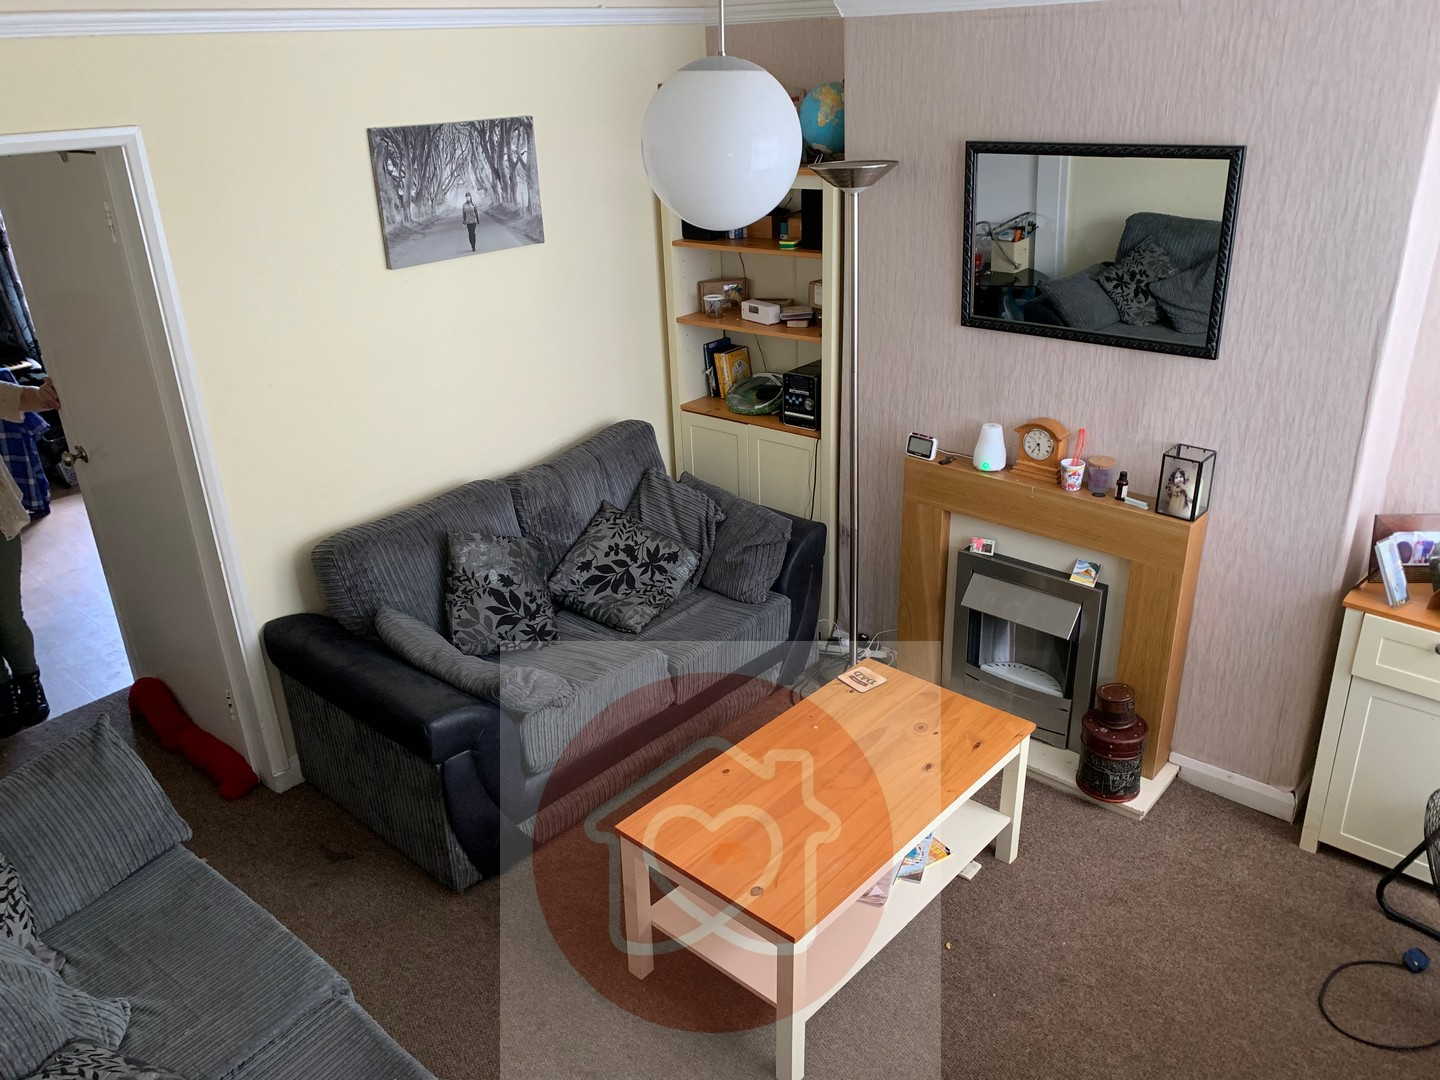 End terraced Home in Mapperly. 3 Double Bedroom over four floors. Spacious living areas & good sized rear garden.  Situated in a great location, close to local amenities, schools and excellent transport links into Nottingham City Centre.